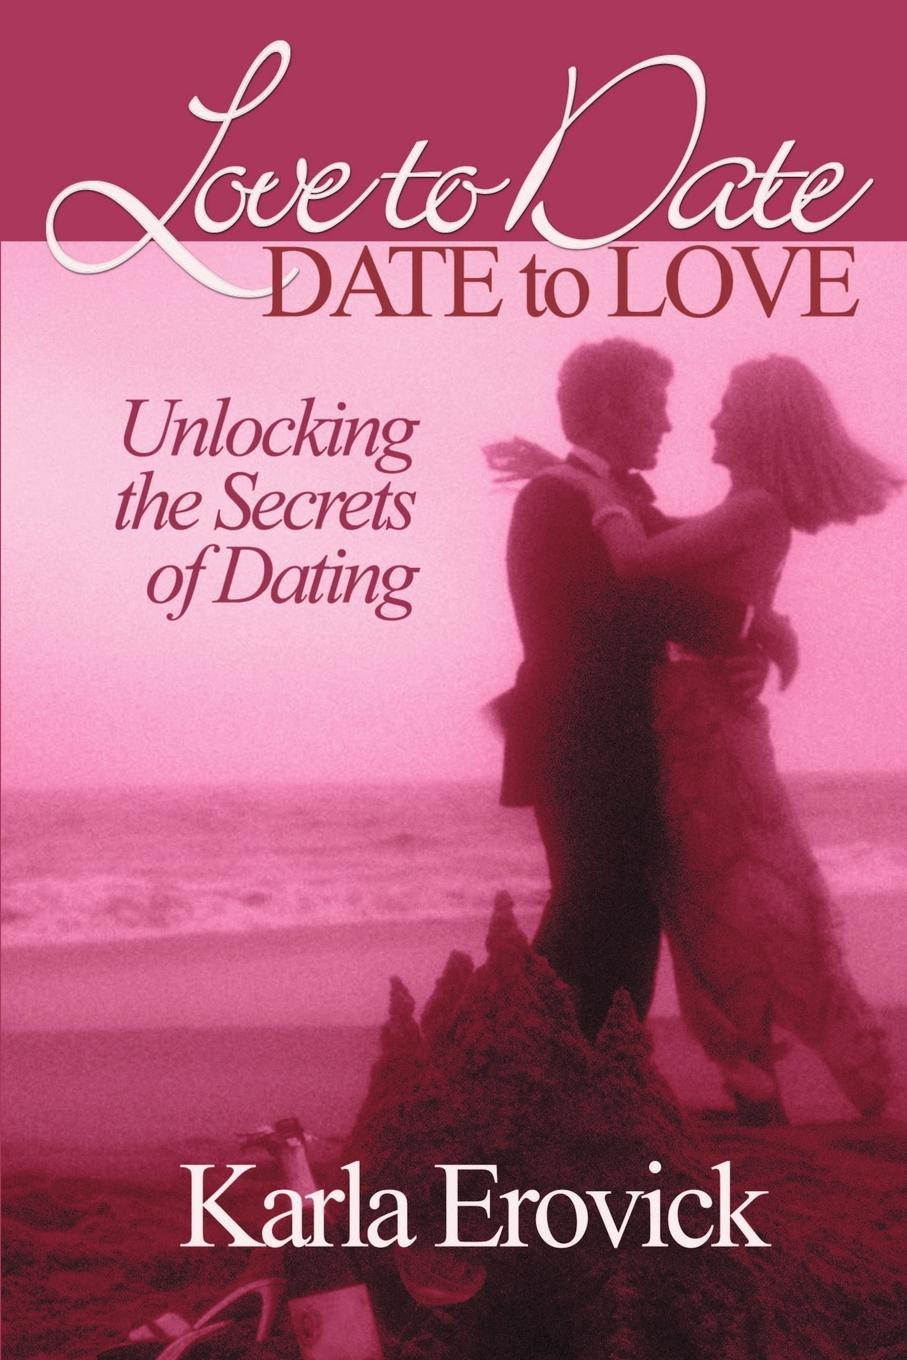 лучшая цена Karla Erovick Love to Date-Date to Love. Unlocking the Secrets of Dating